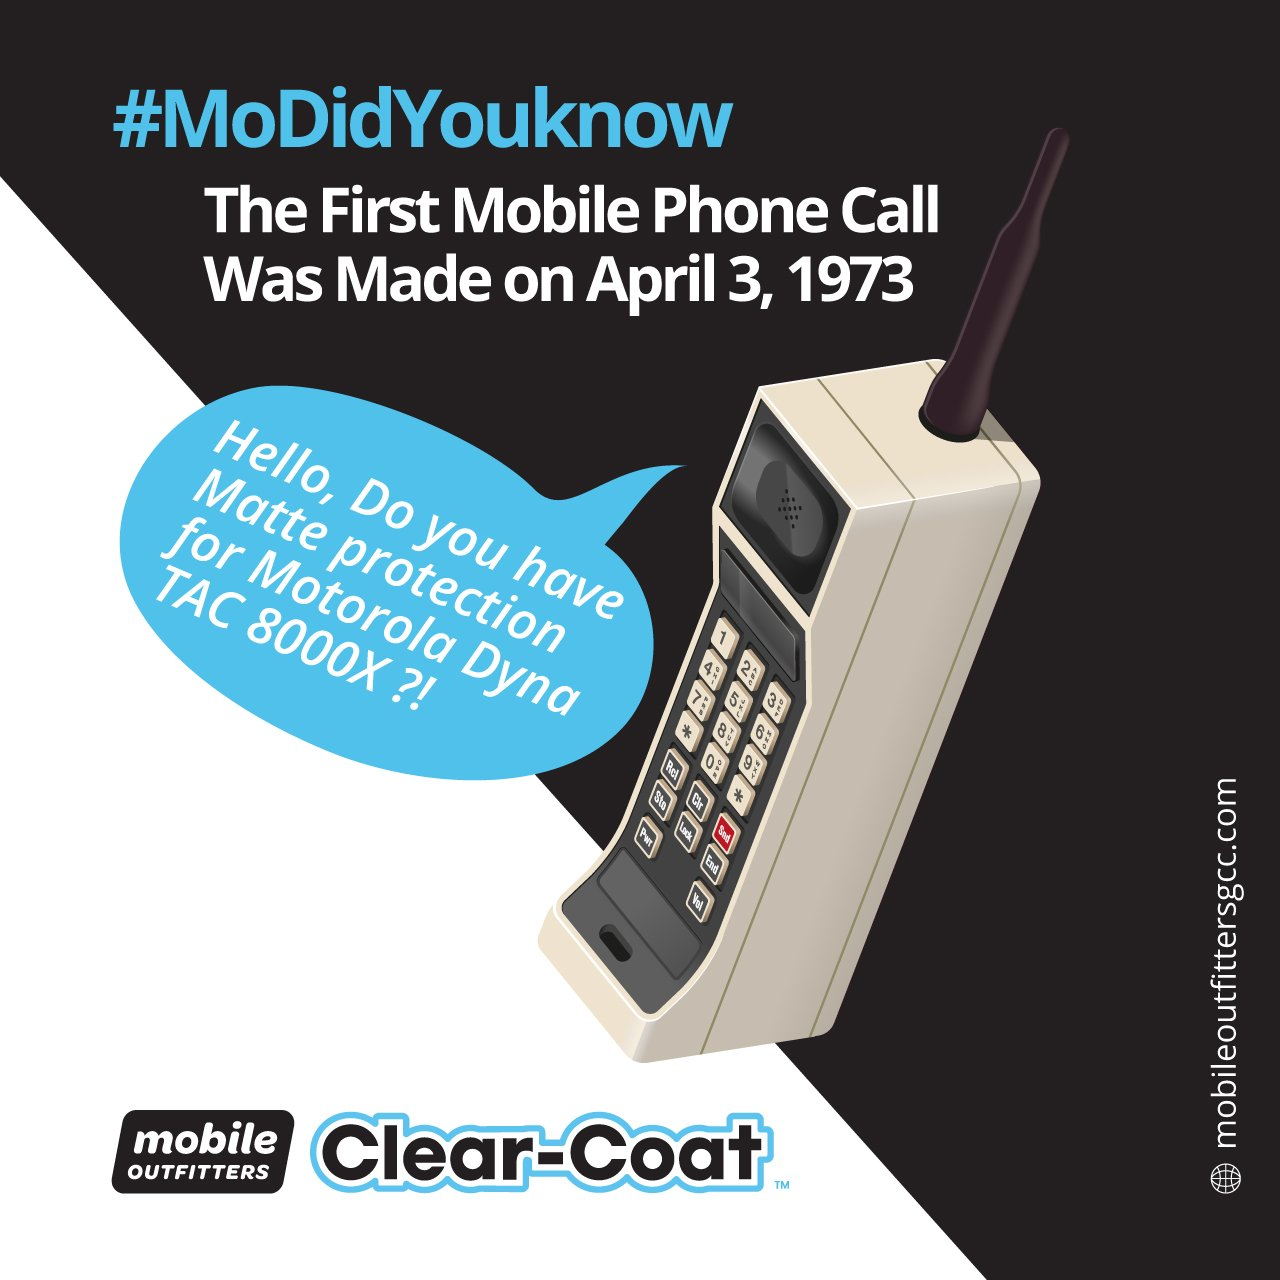 First mobile phone call ever made